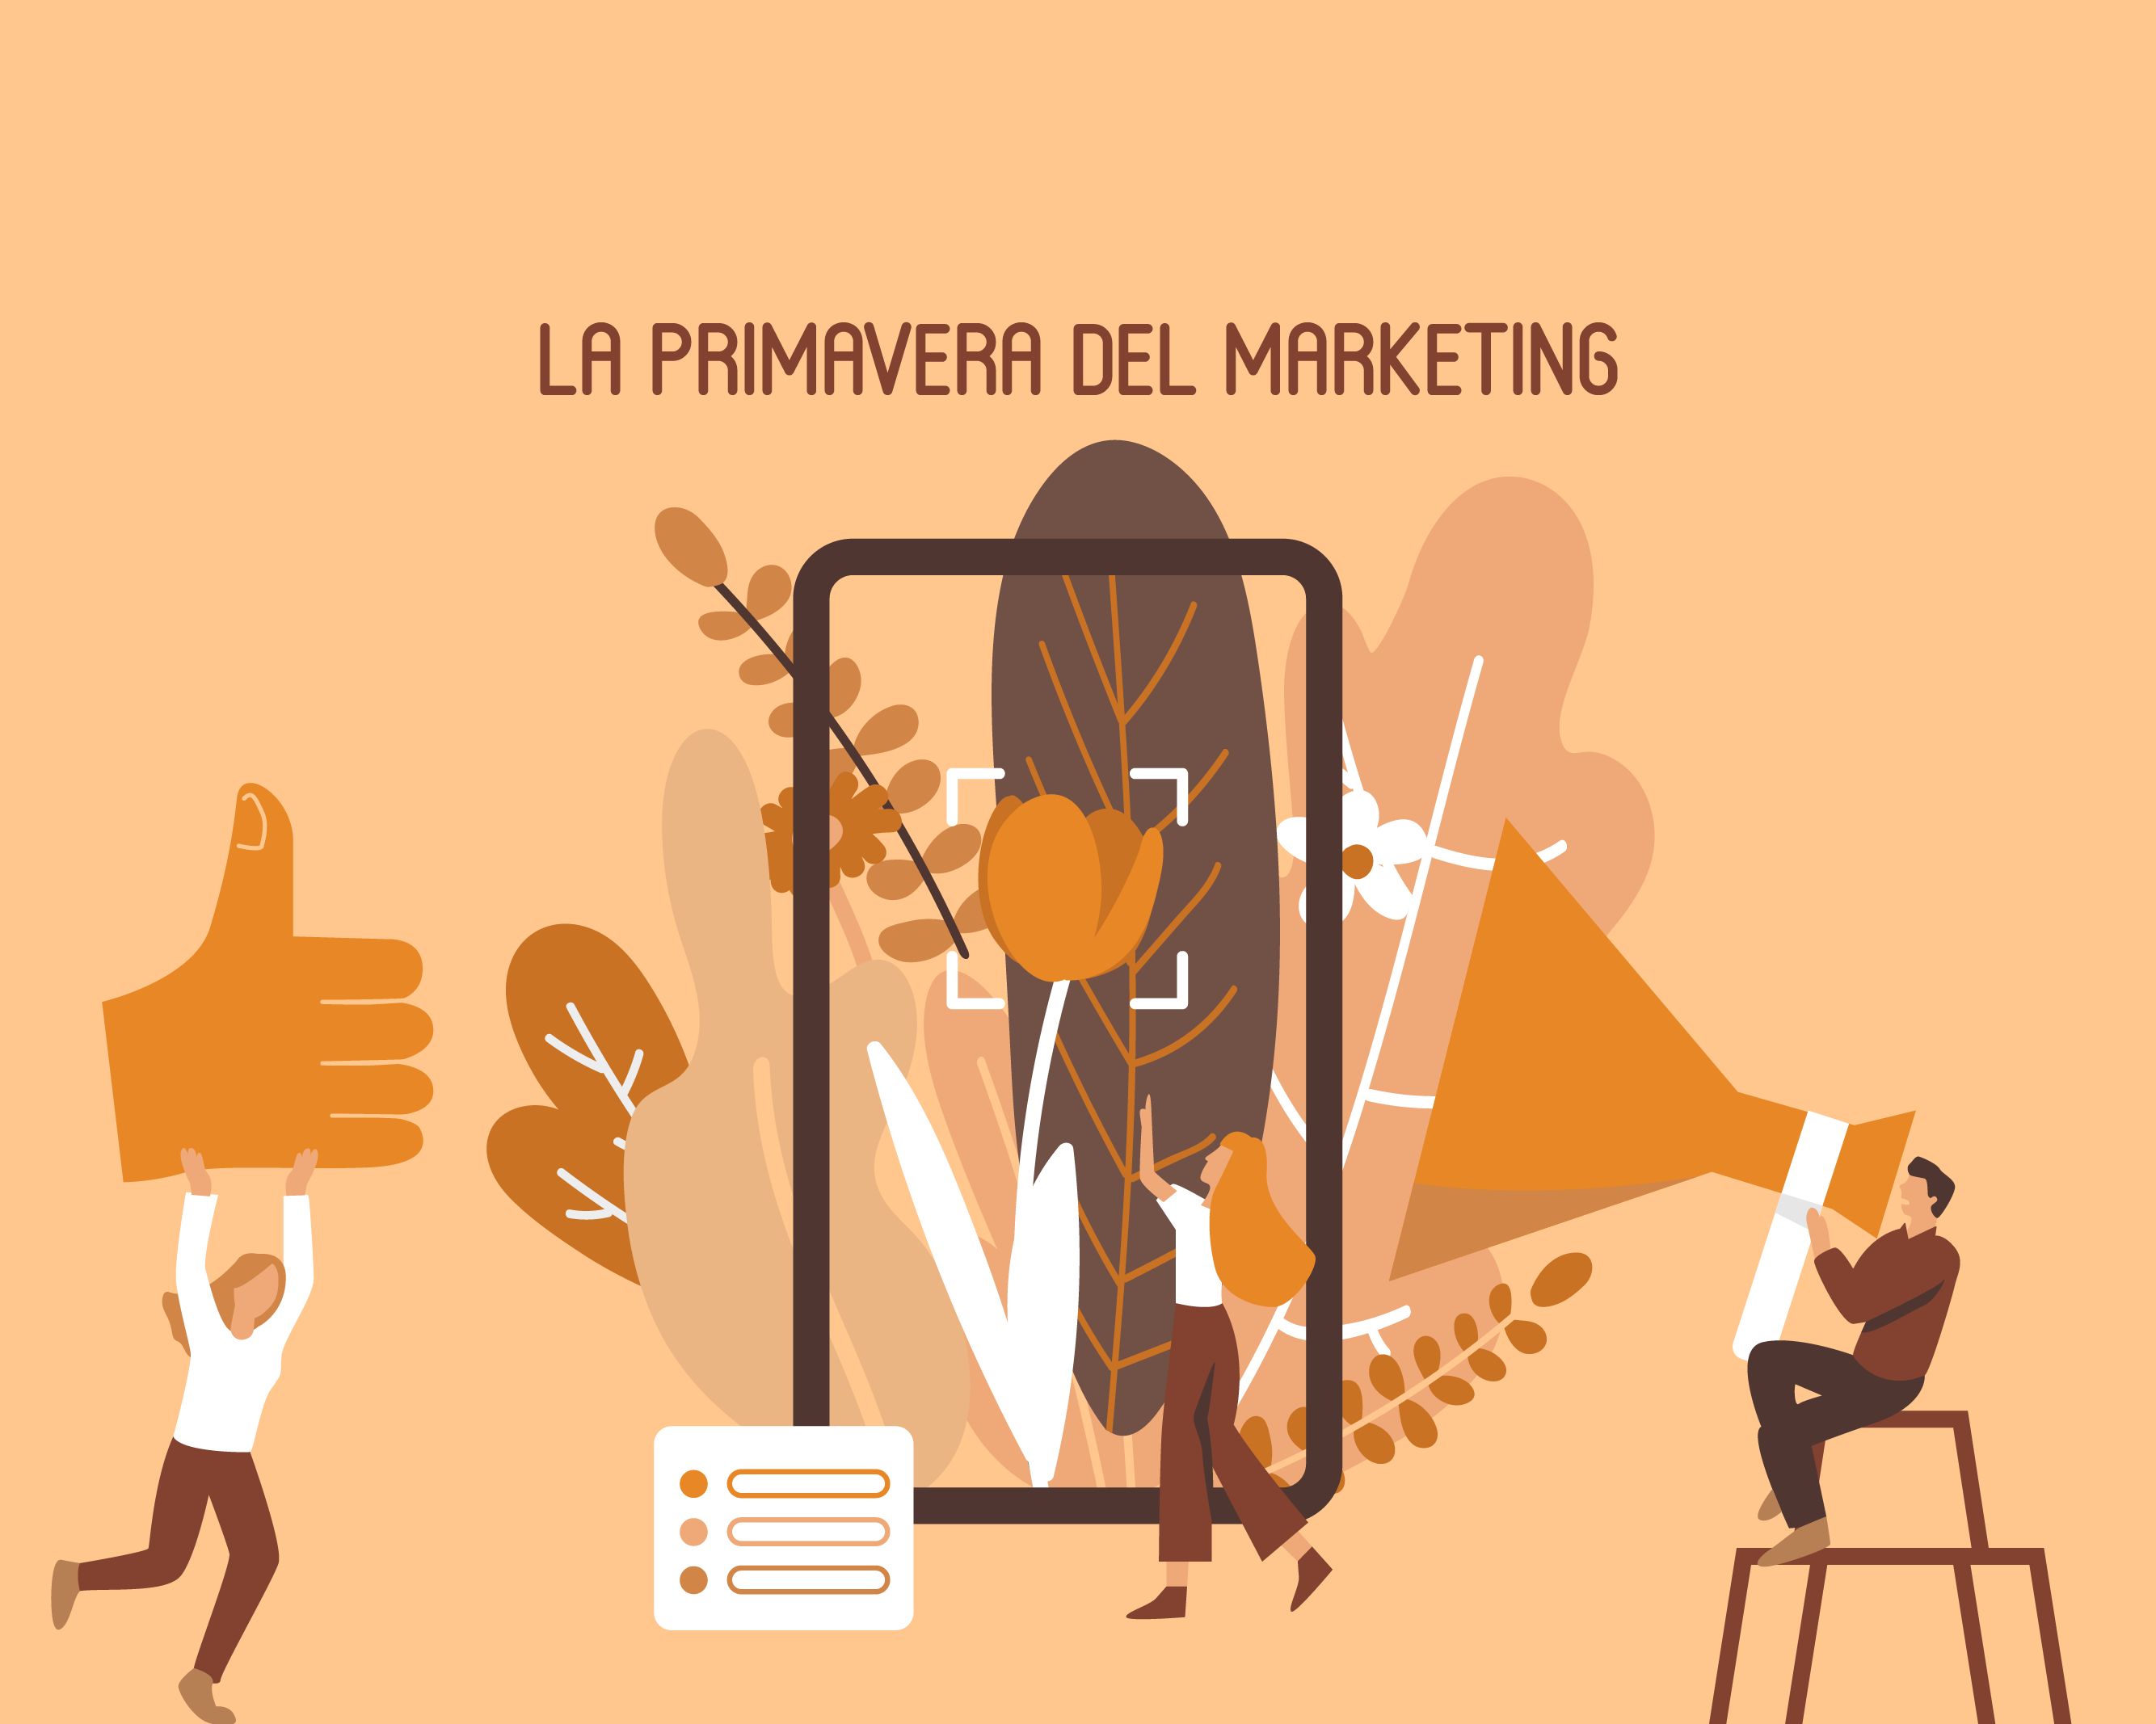 La primavera del marketing